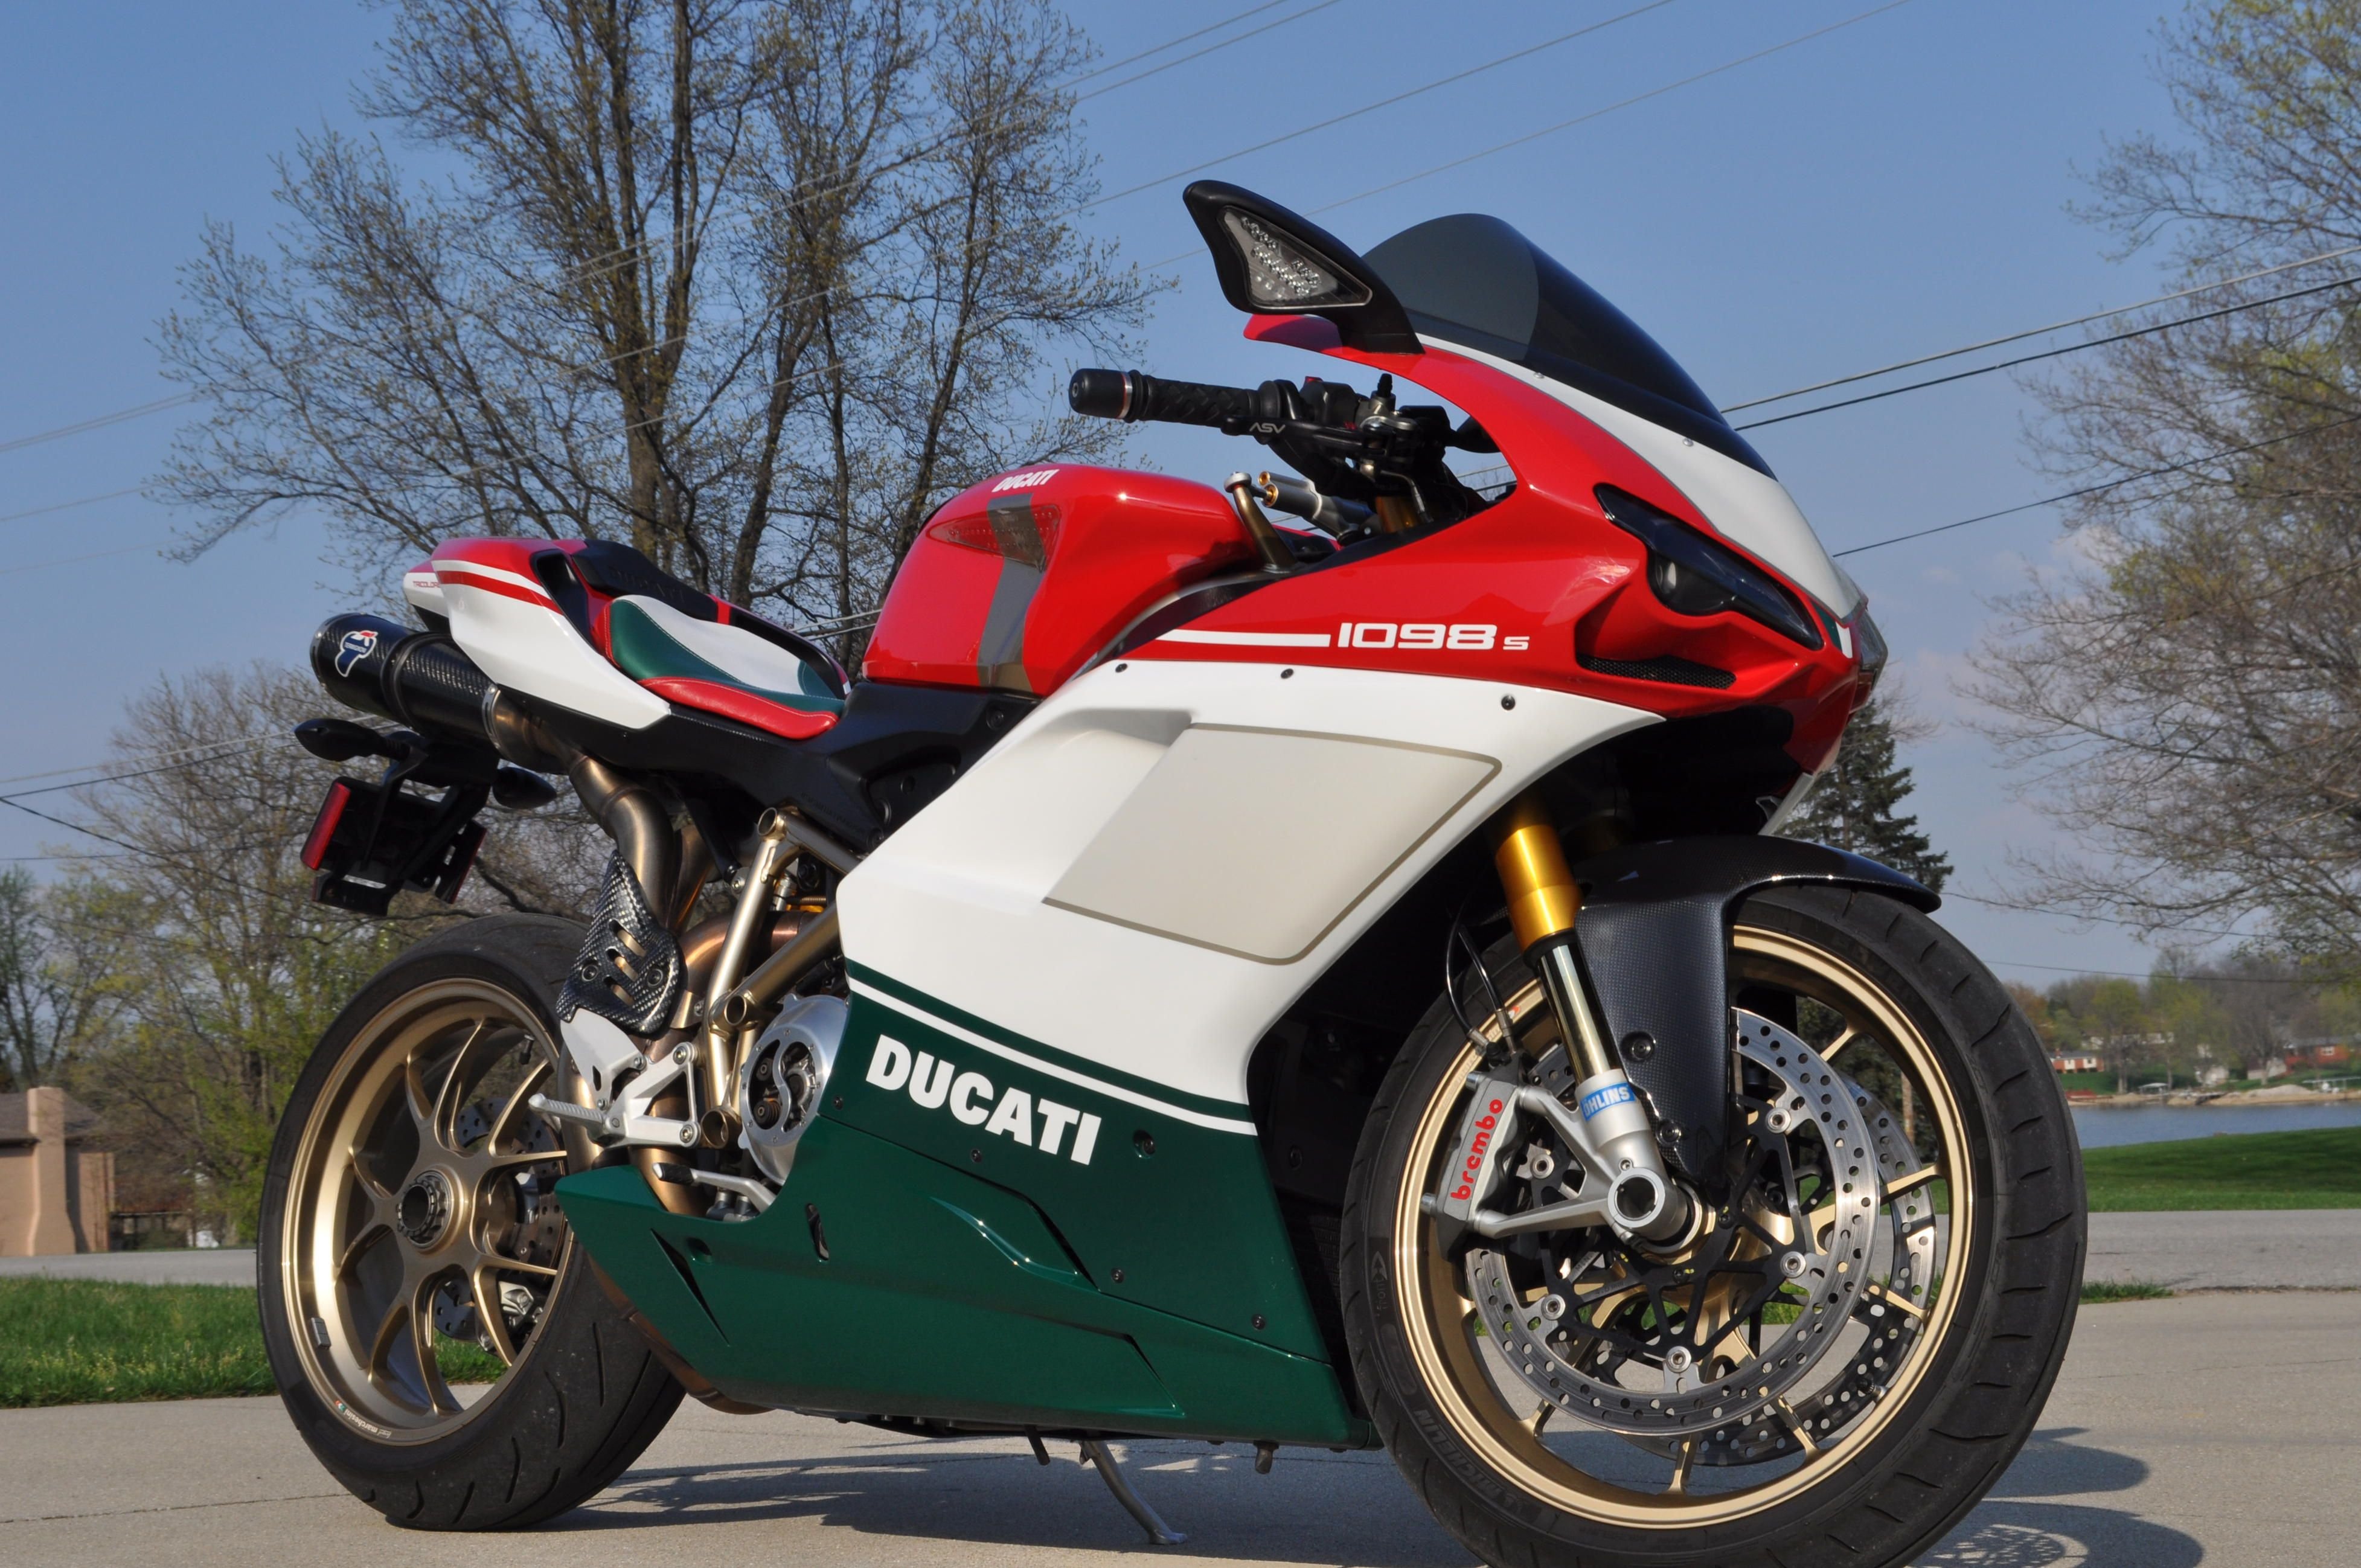 10 Best Sports Bikes To Buy For Less Than $10,000 | HotCars